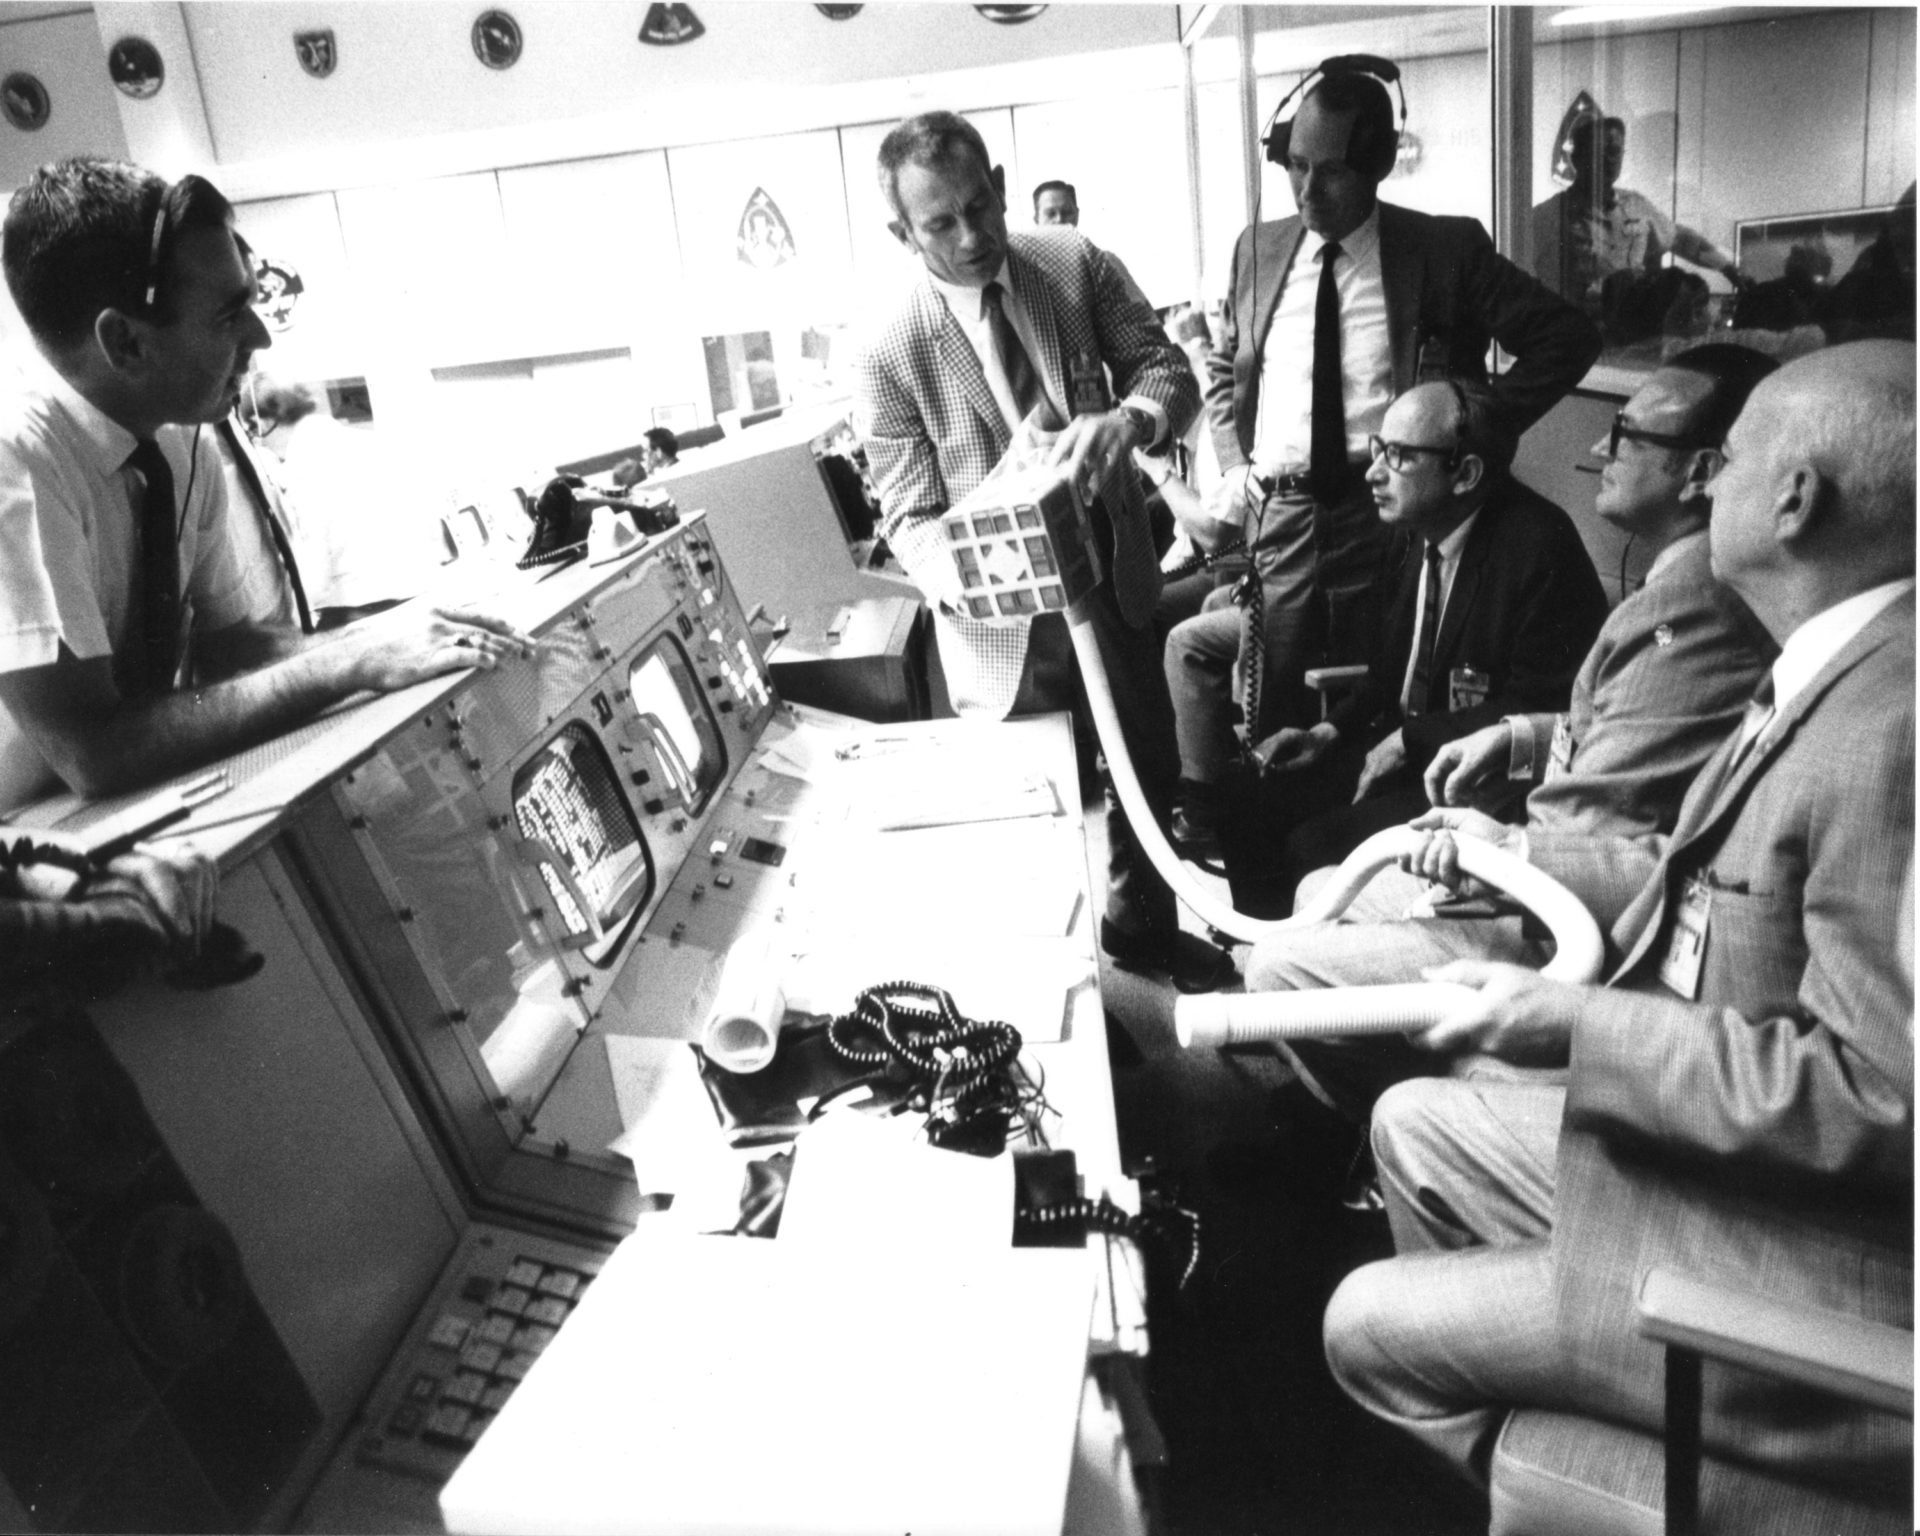 things get serious as people discuss how to repair the model partin the mission control room